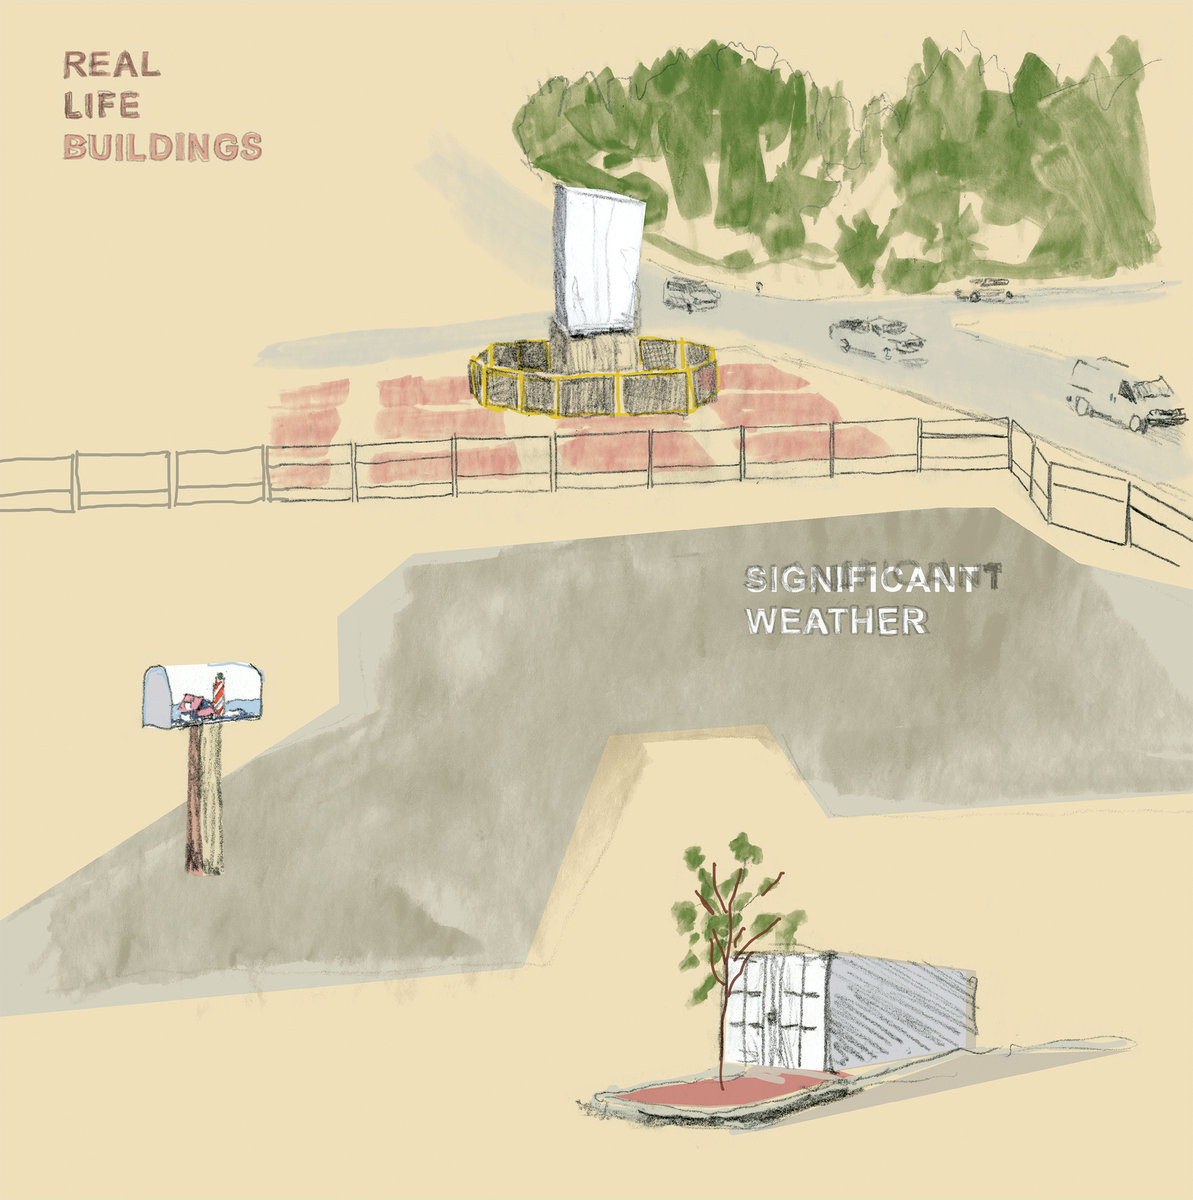 Real Life Buildings significant weather album art